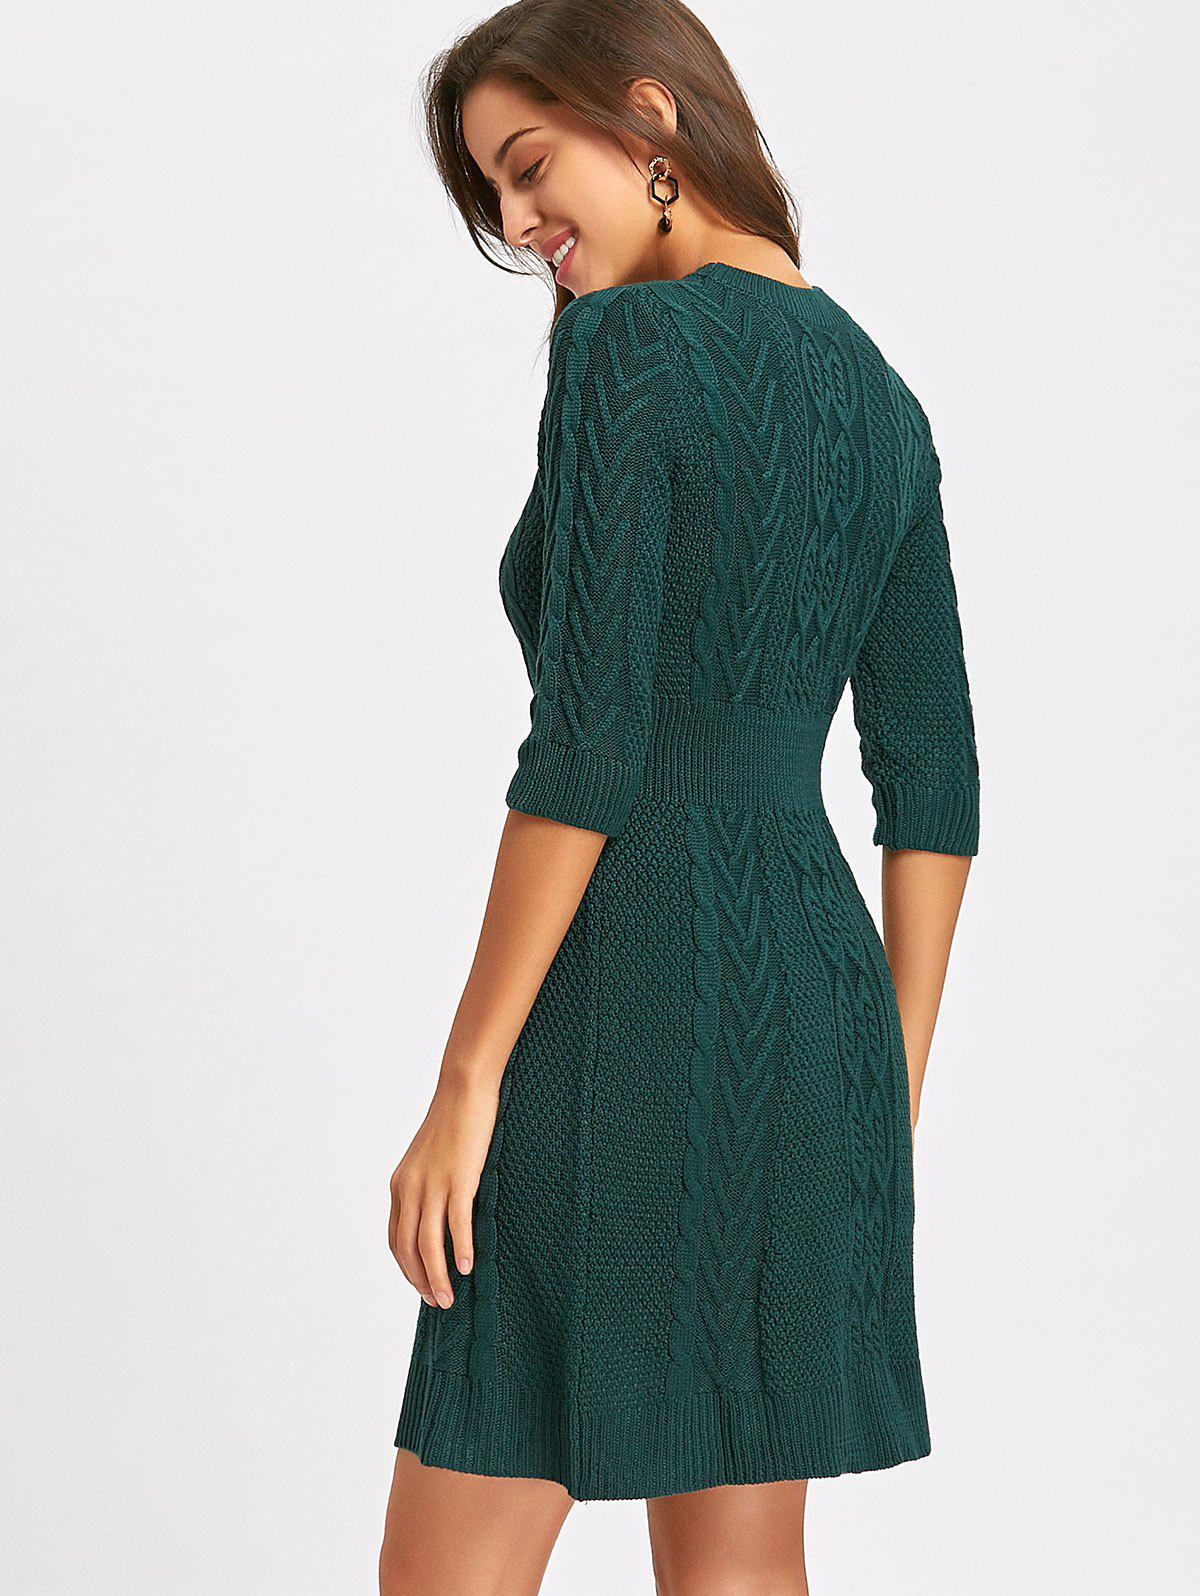 Crew Neck Cable Knitted Mini Dress - GREEN S